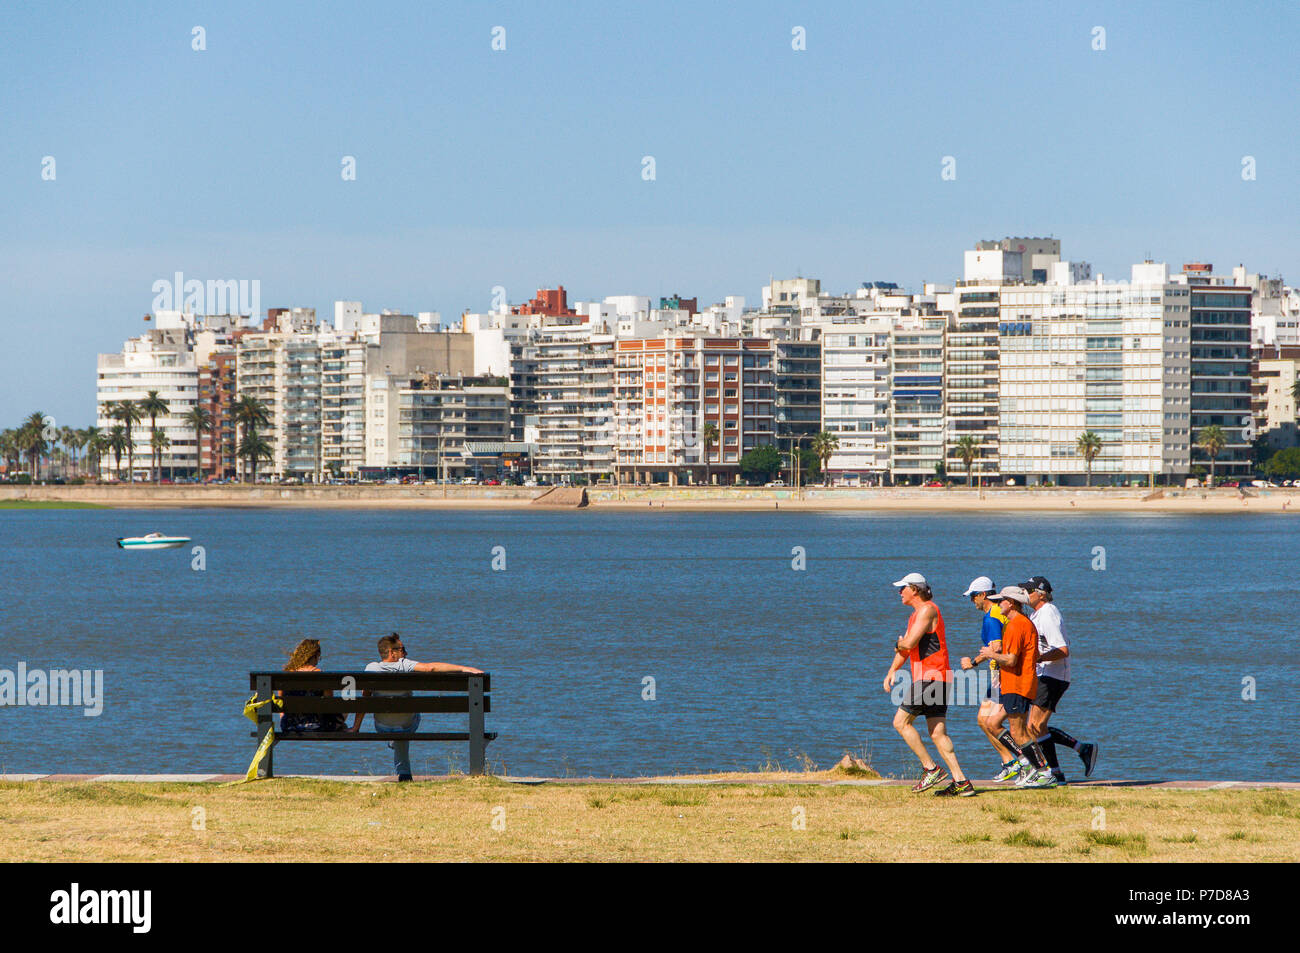 Joggers and people on a bench at the Rambla, promenade of Montevideo, Uruguay - Stock Image